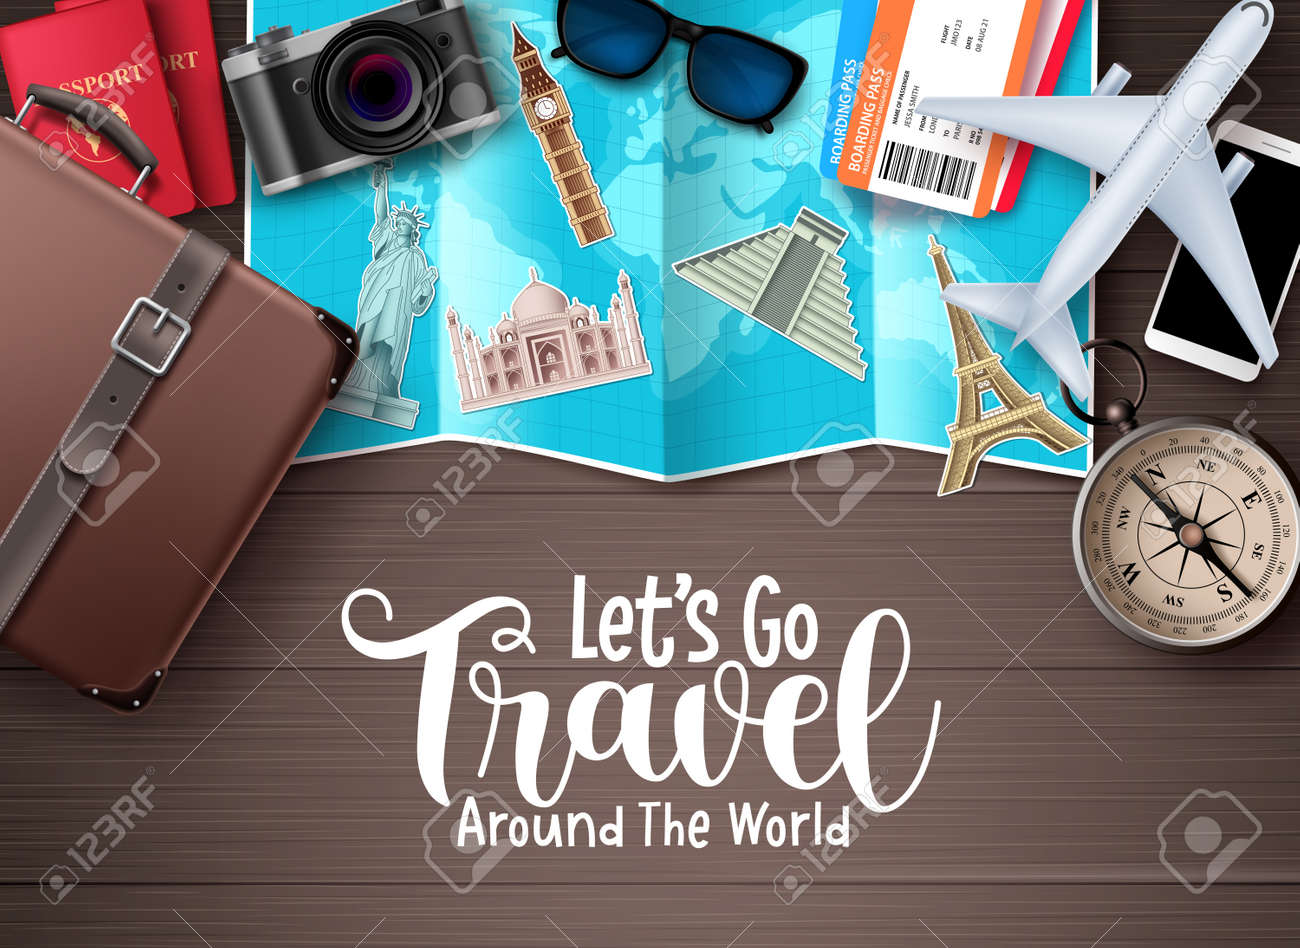 Travel vector design. Let's go travel around the world text in wood space background with traveler elements for trip and tour worldwide destination vacation. Vector illustration. - 169989322